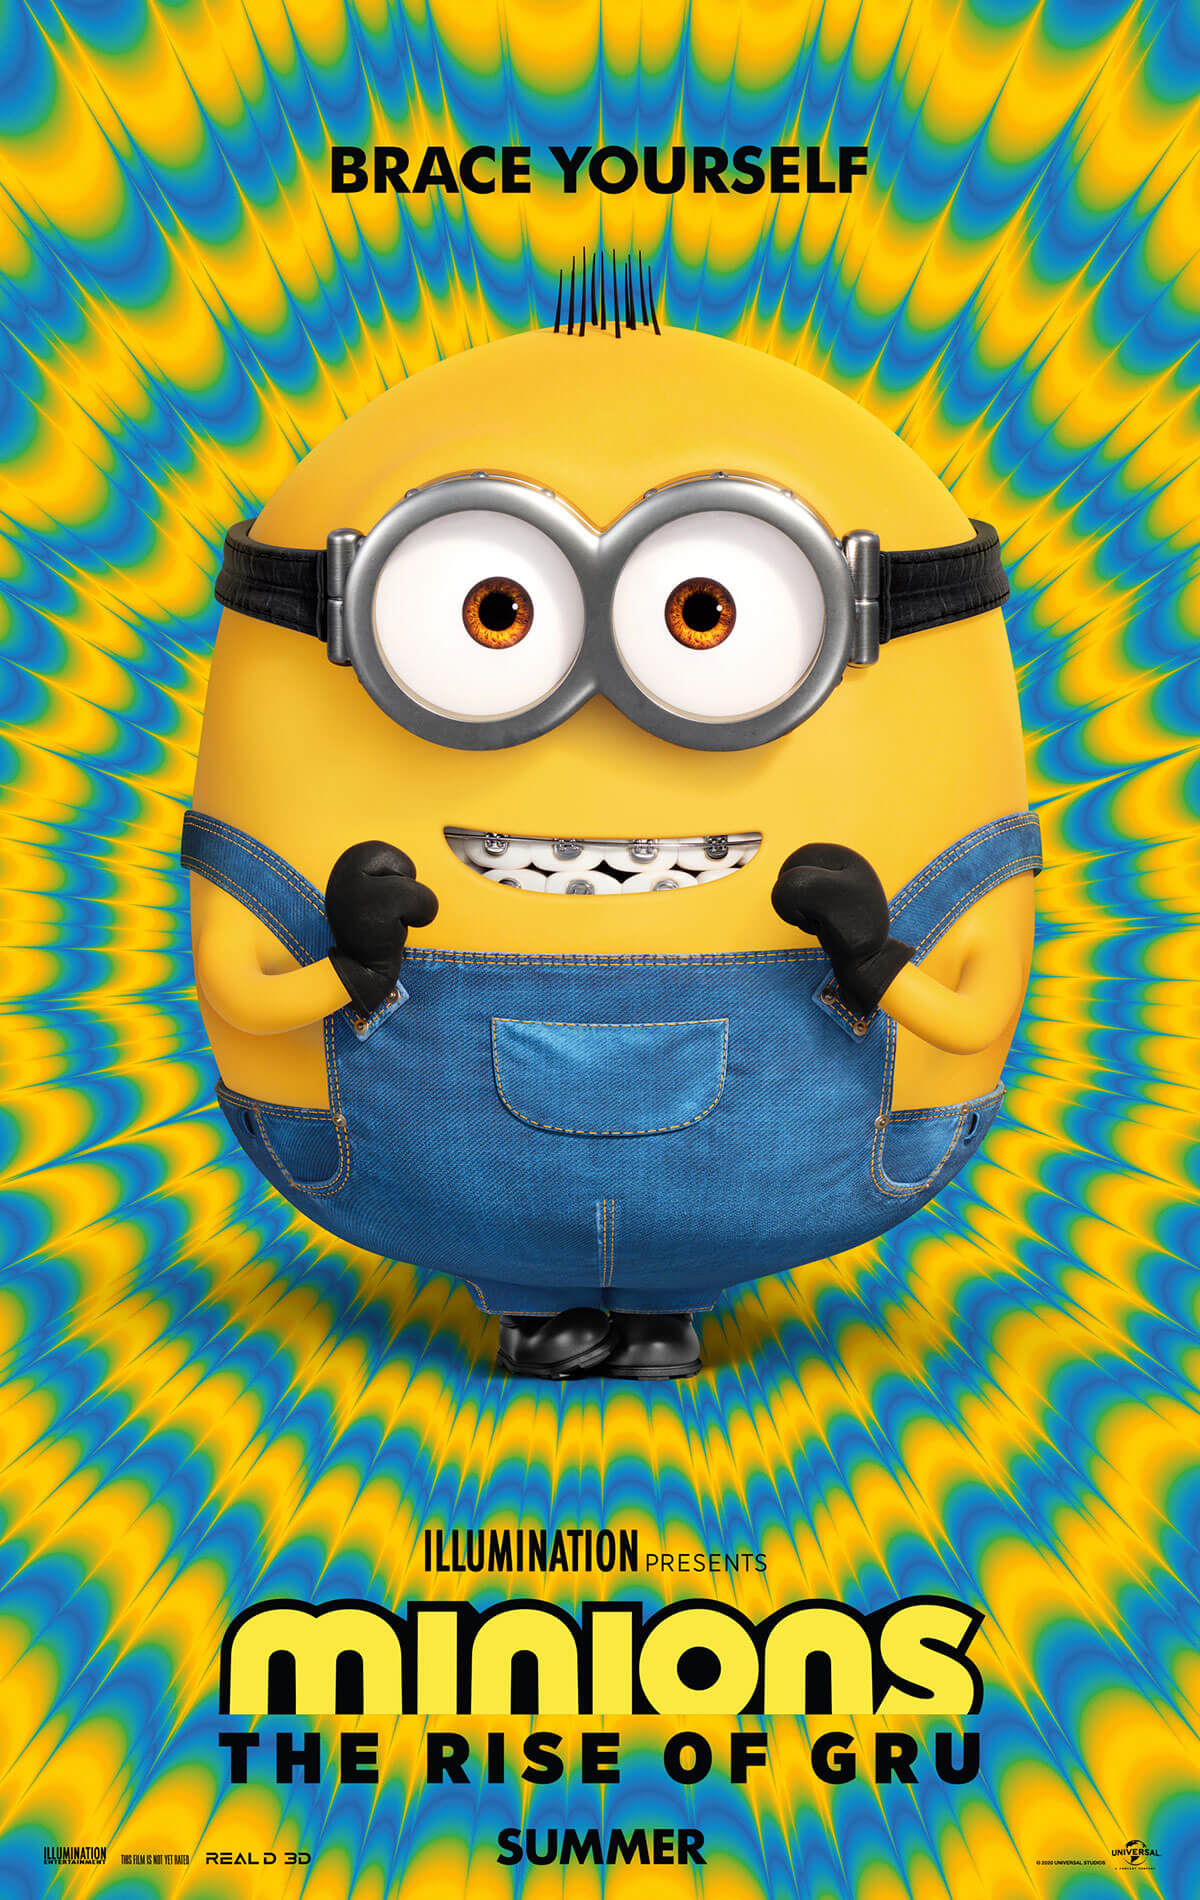 Psychedelic blue and yellow circle background with Bob the Minion smiling